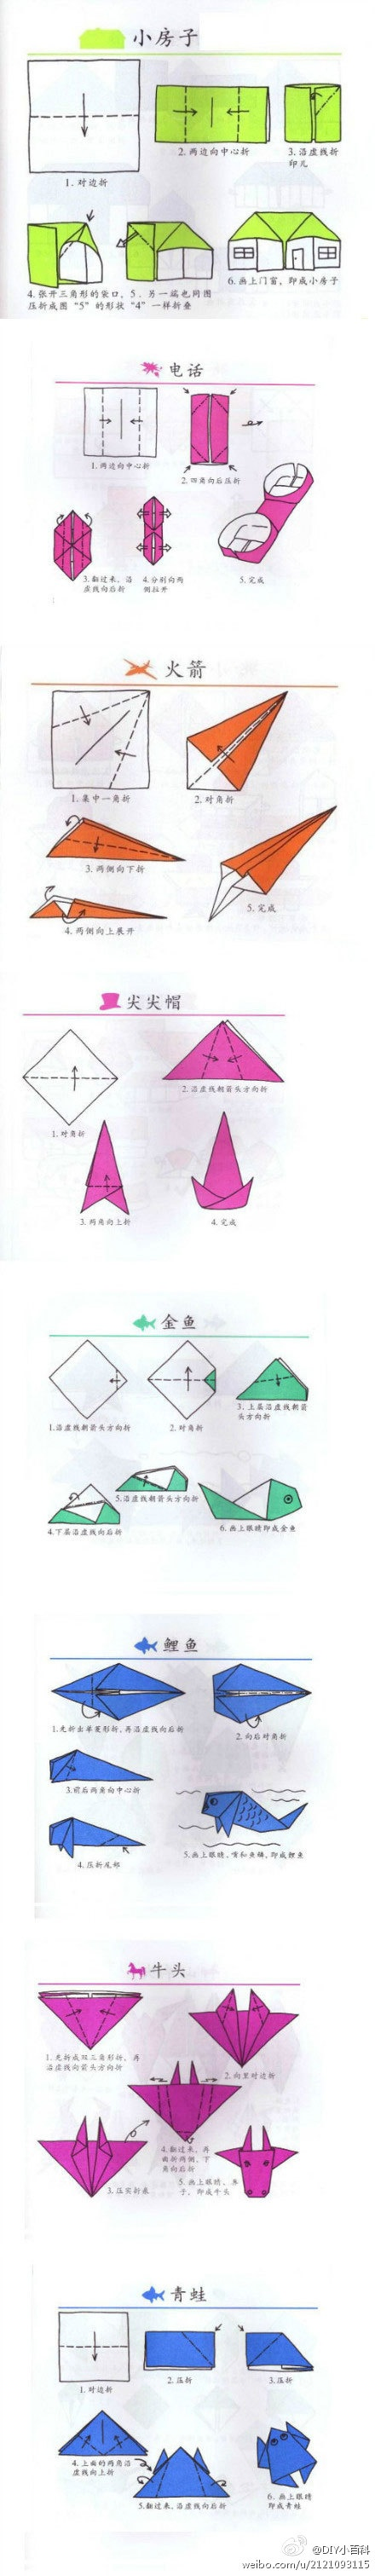 1000+ images about Keep Calm Do Origami :-) on Pinterest ... - photo#33